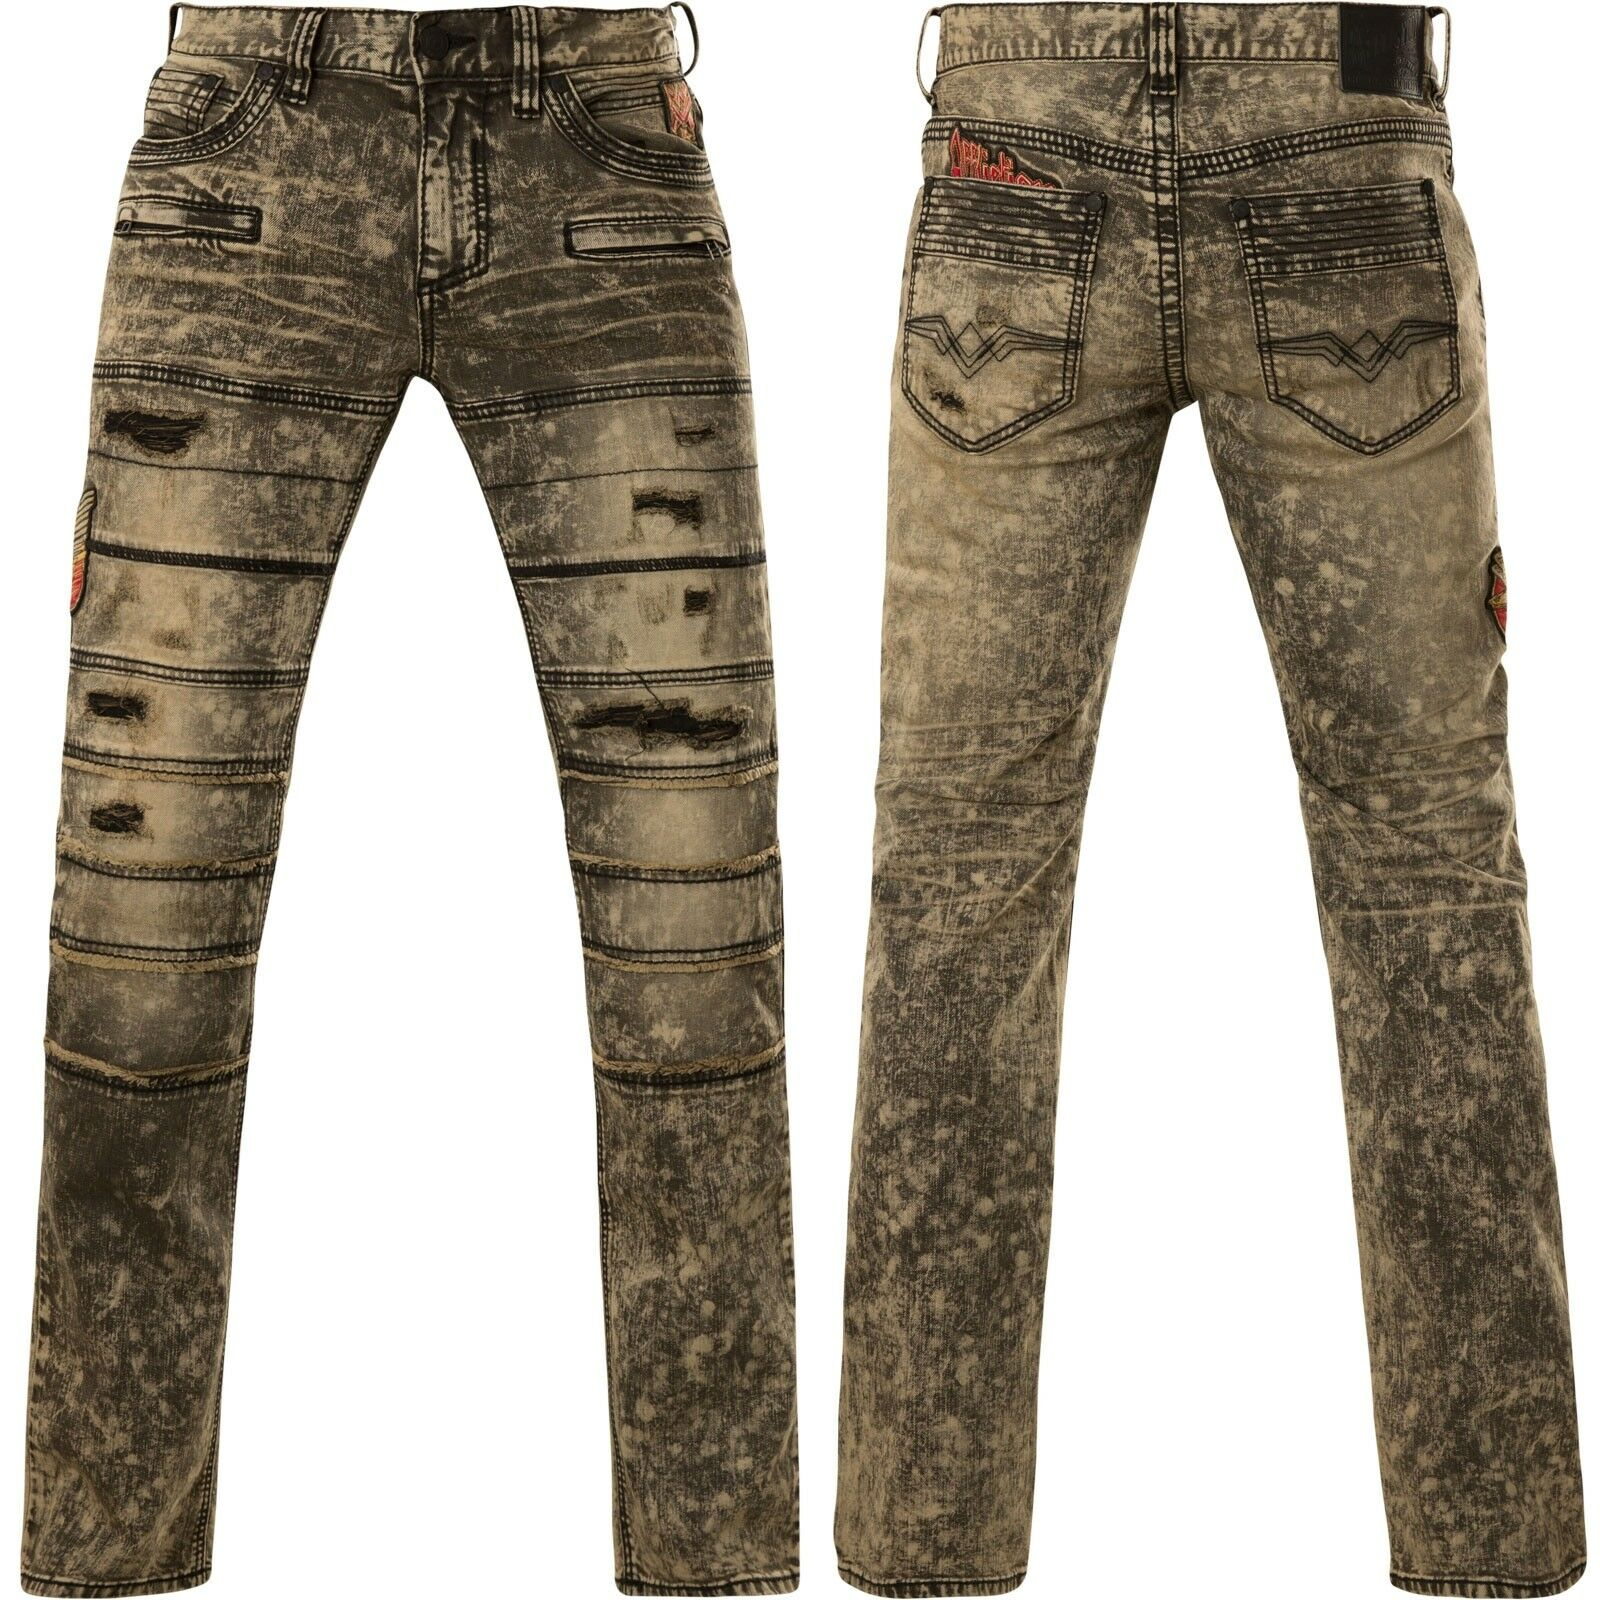 AFFLICTION Jeans Ace Rising Rising Rising Sable Grau 4061a7